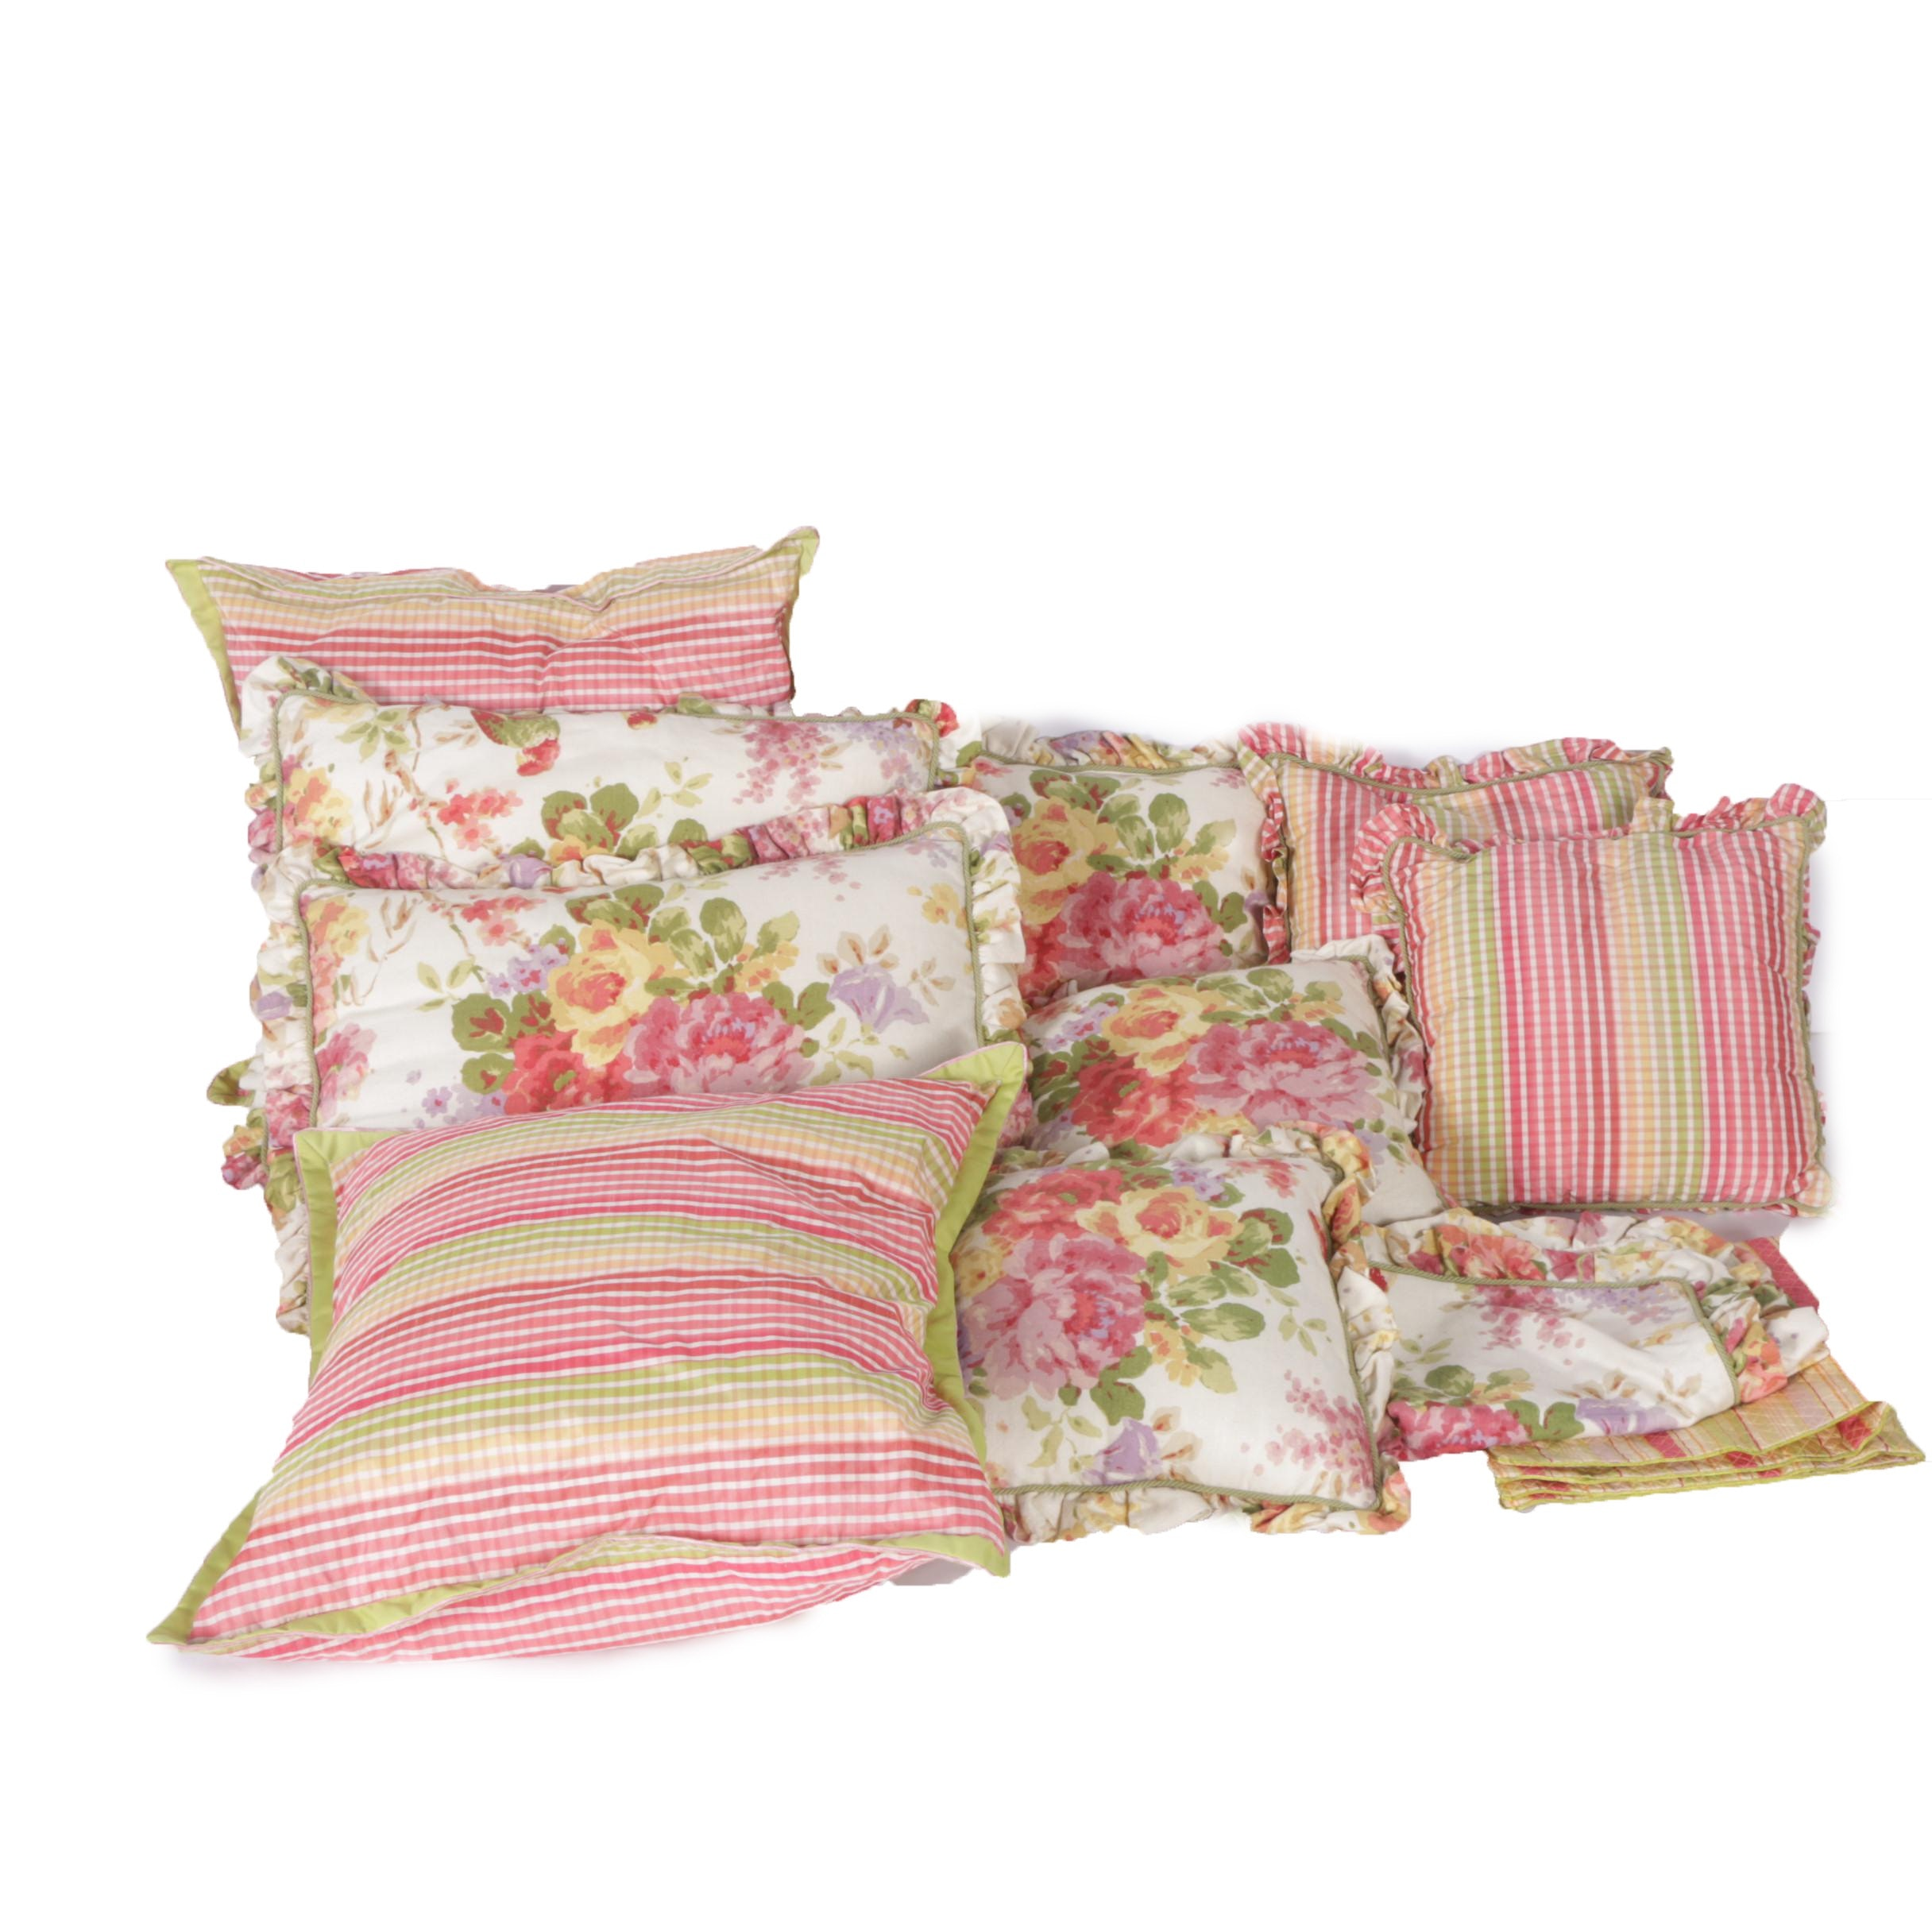 Collection Of Floral And Striped Throw Pillows And Covers ...